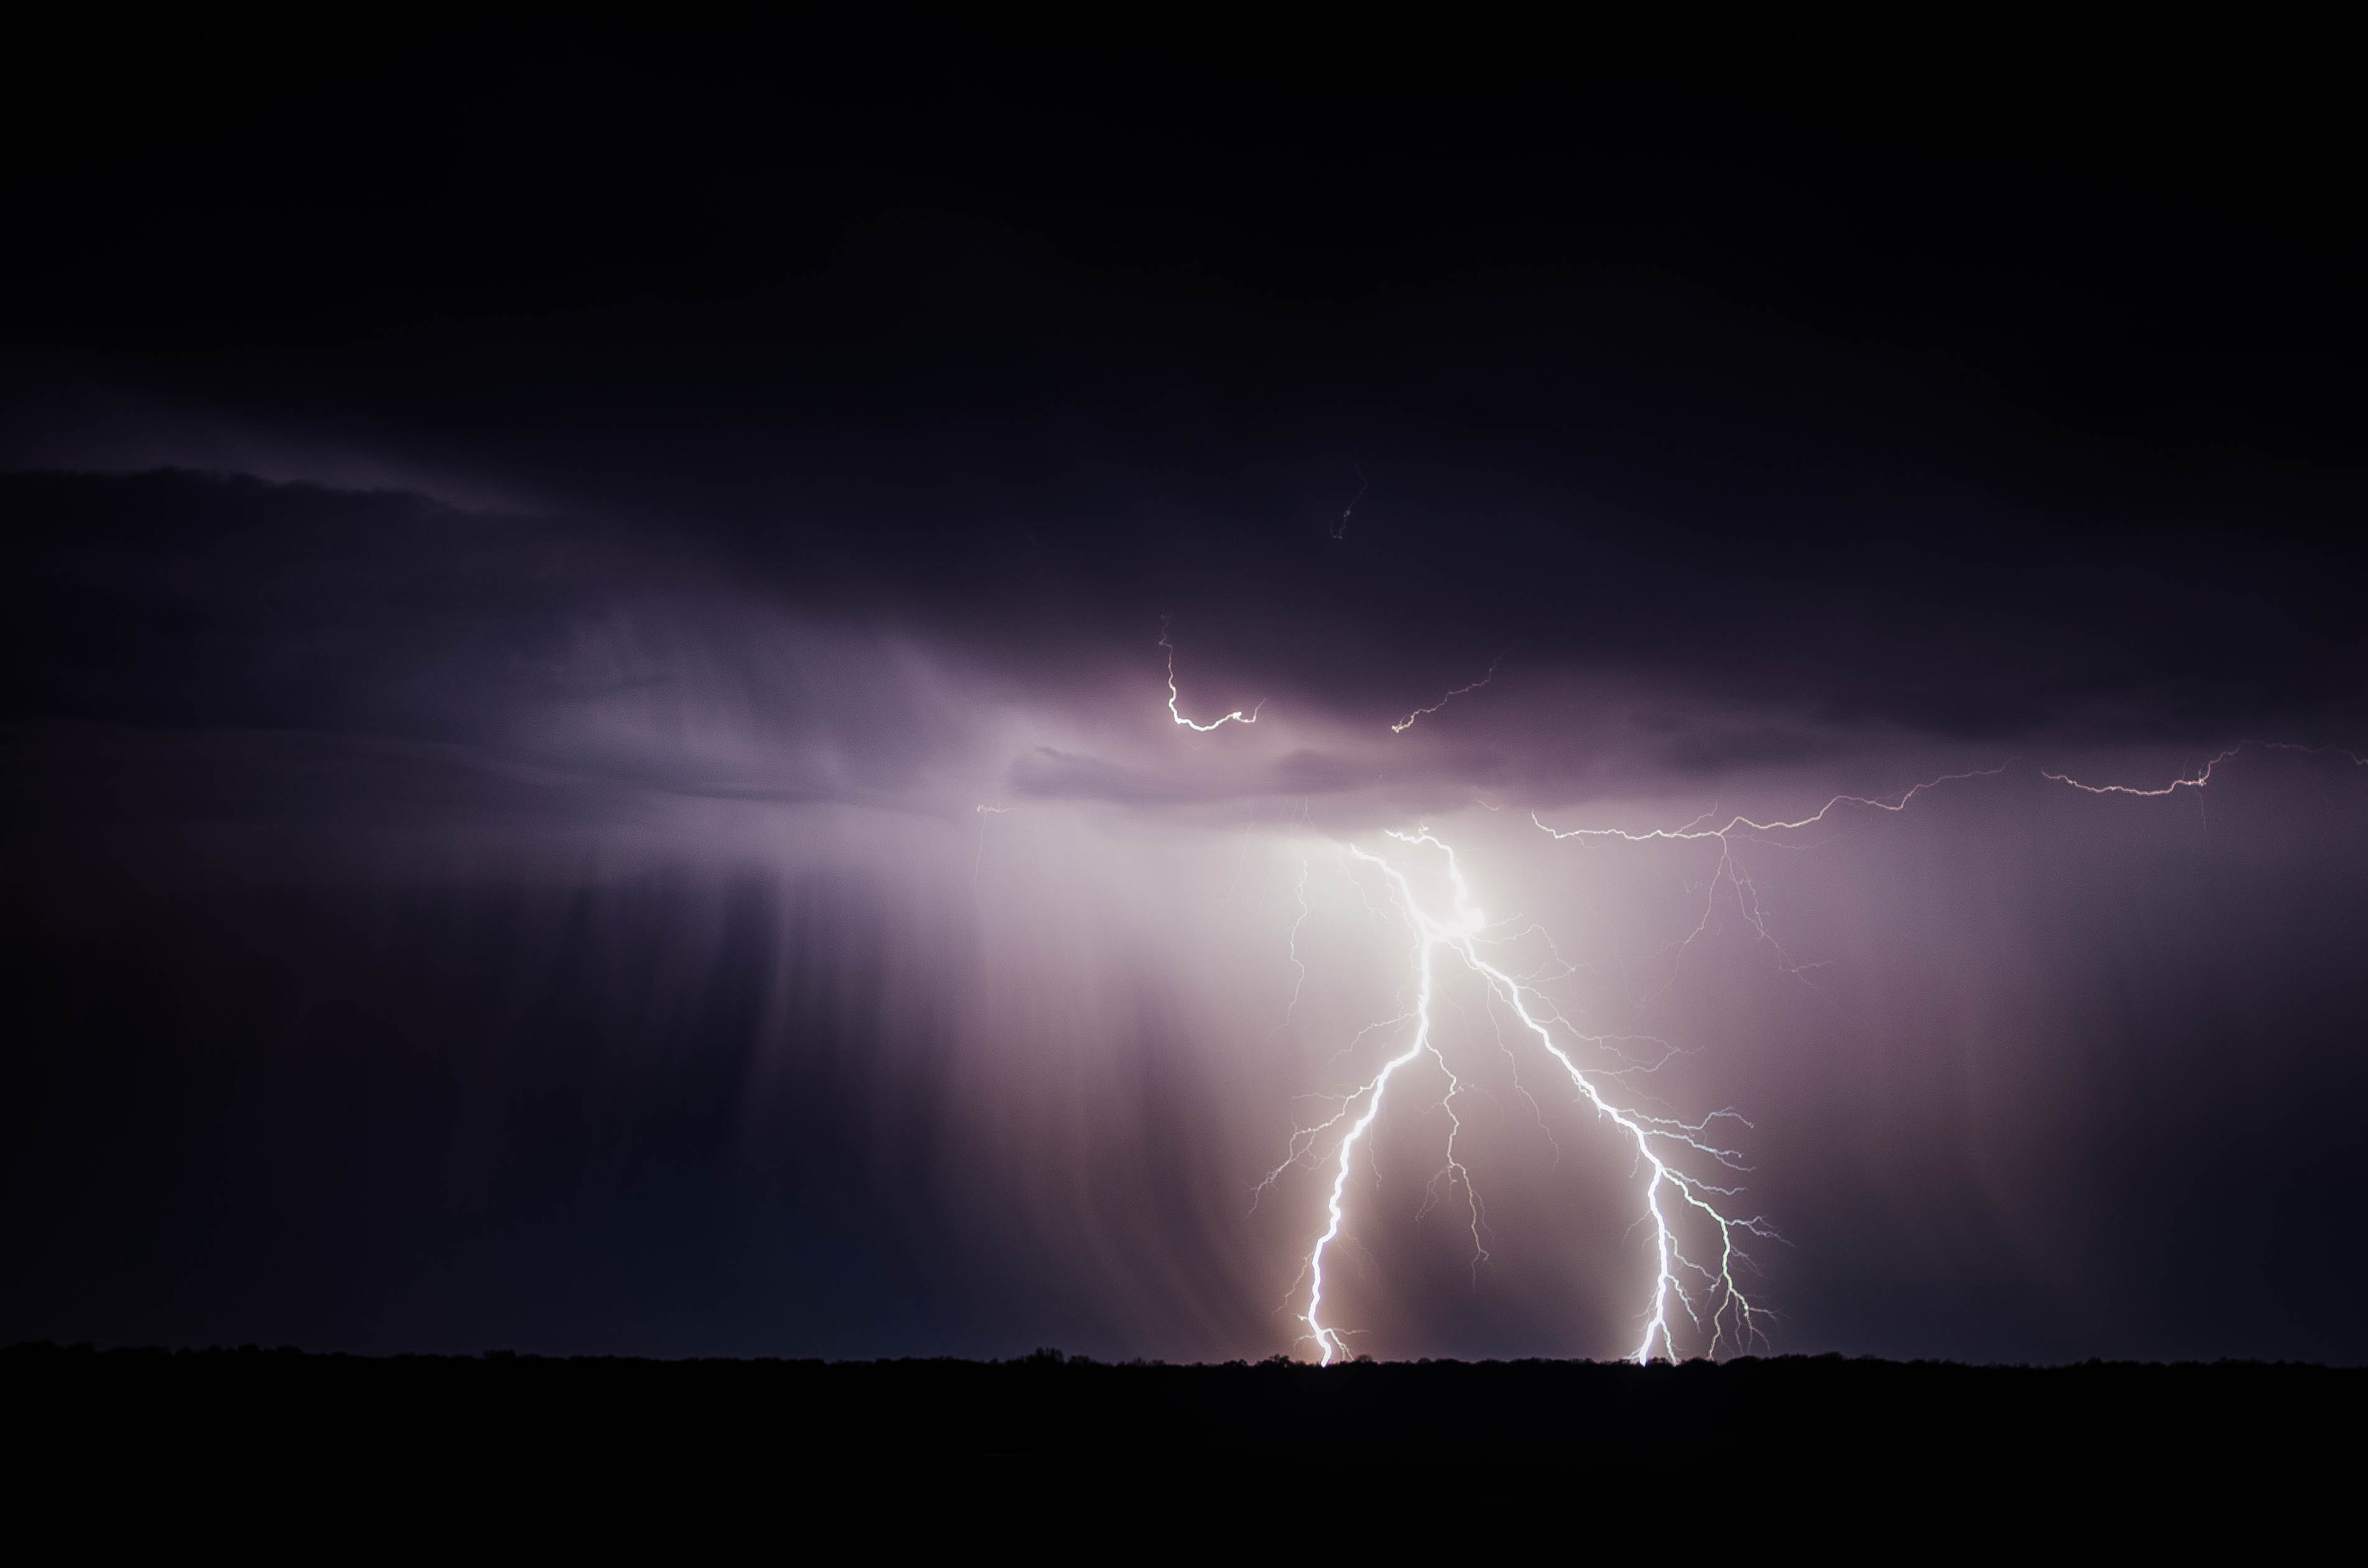 Thunderstorm, rain, lightning, storm, weather, night, sky, clouds, dark, rays, light, Electricity, clouds, thunder